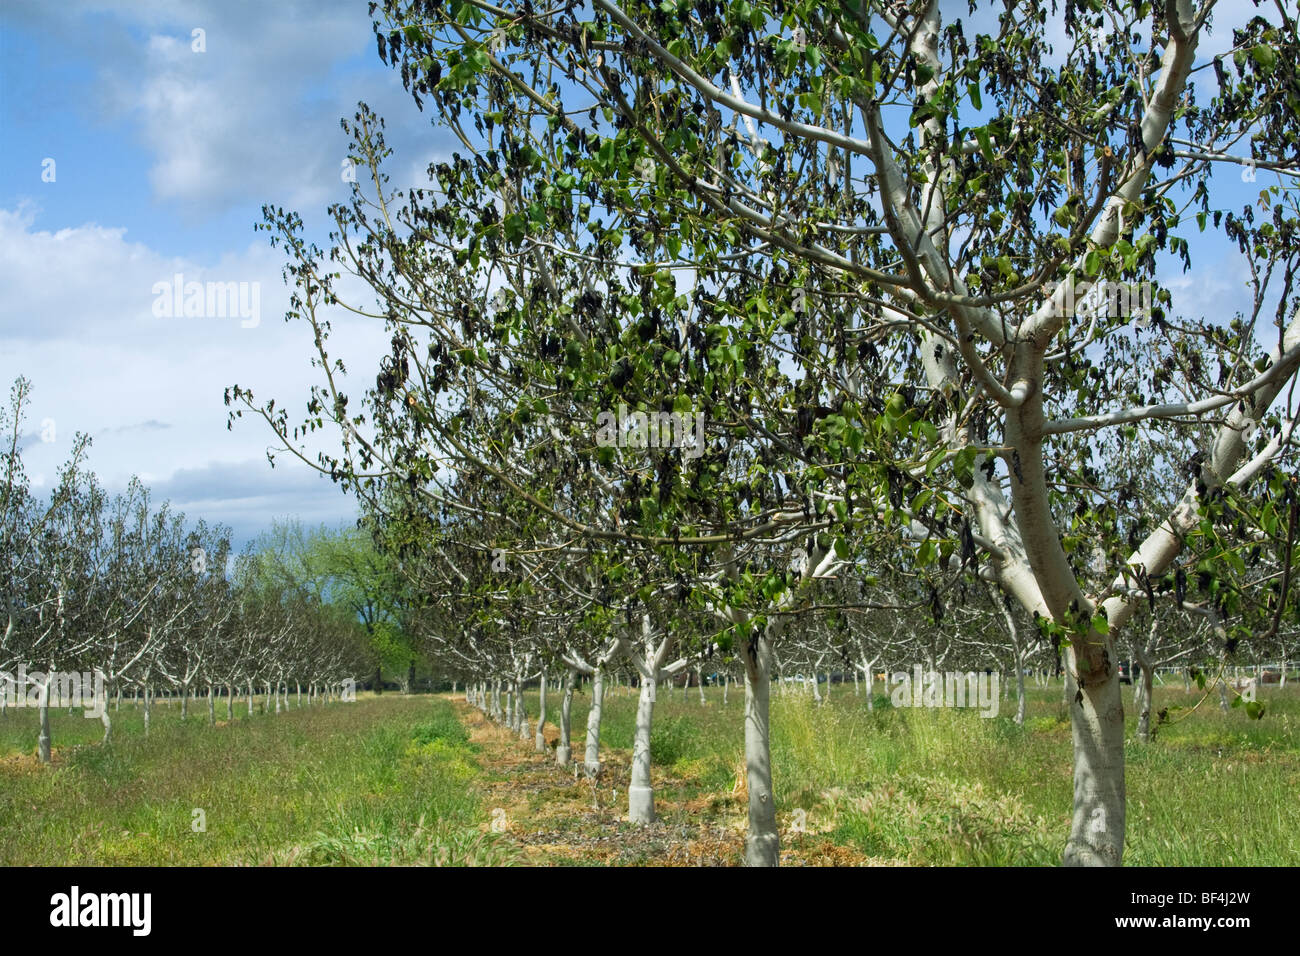 Agriculture - Damage walnut trees caused by a heavy unusual Spring freeze / near Dairyville, California, USA. Stock Photo